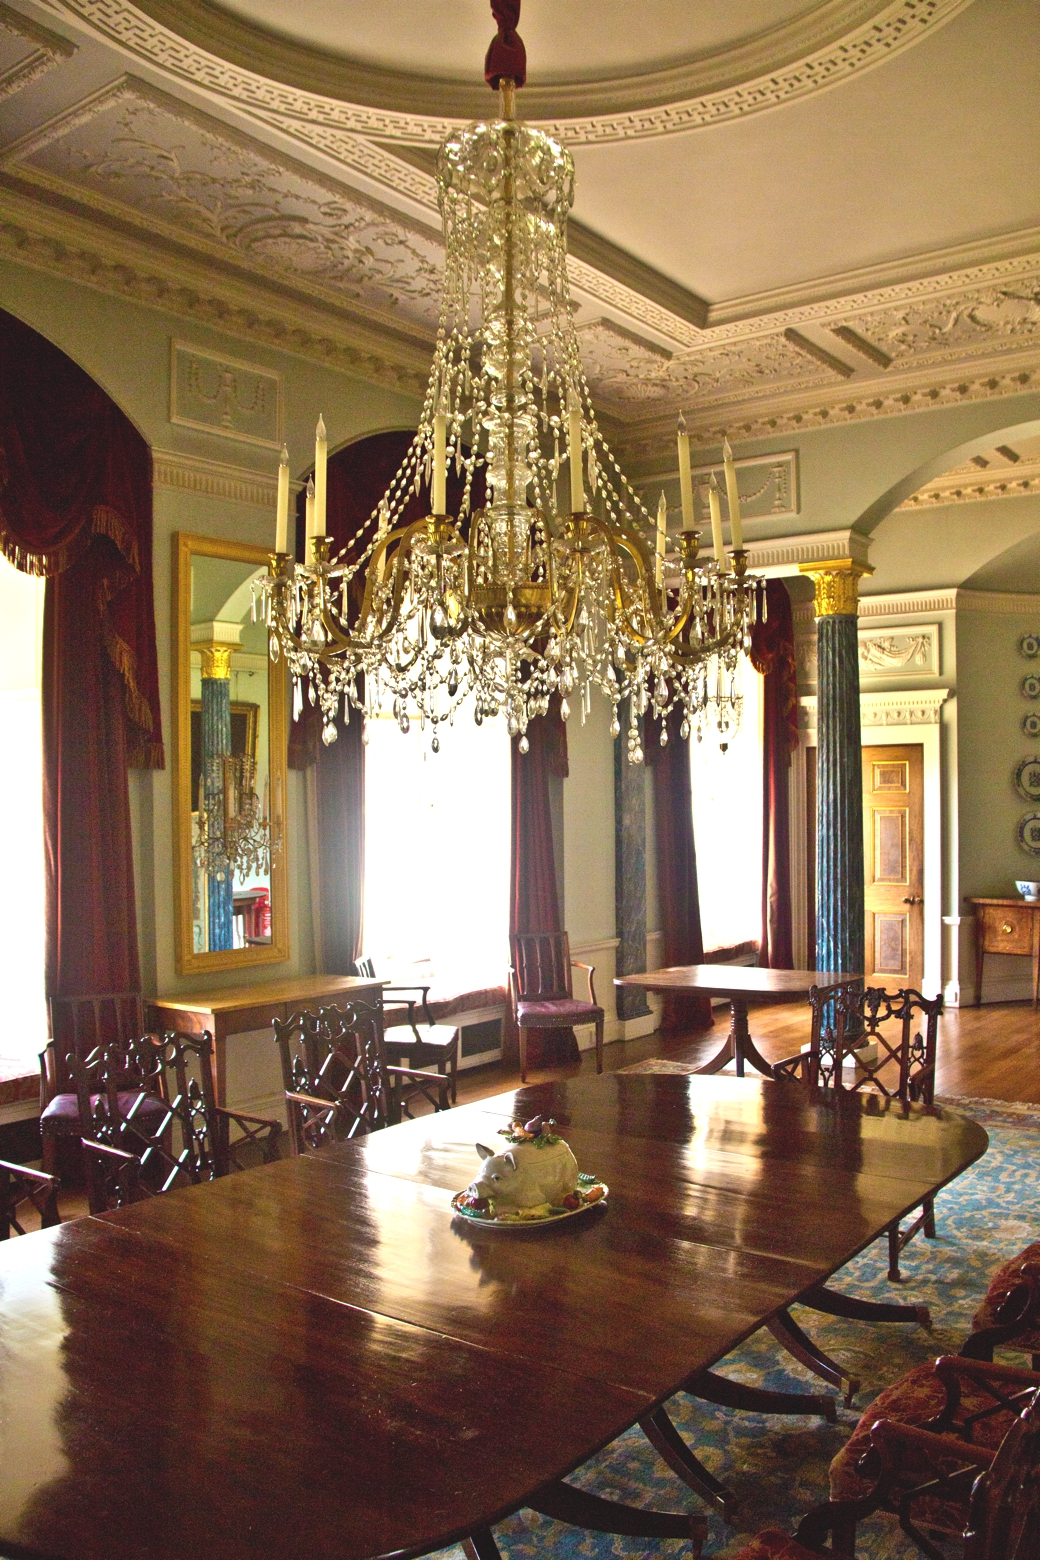 Yorkshire - Sledmere House